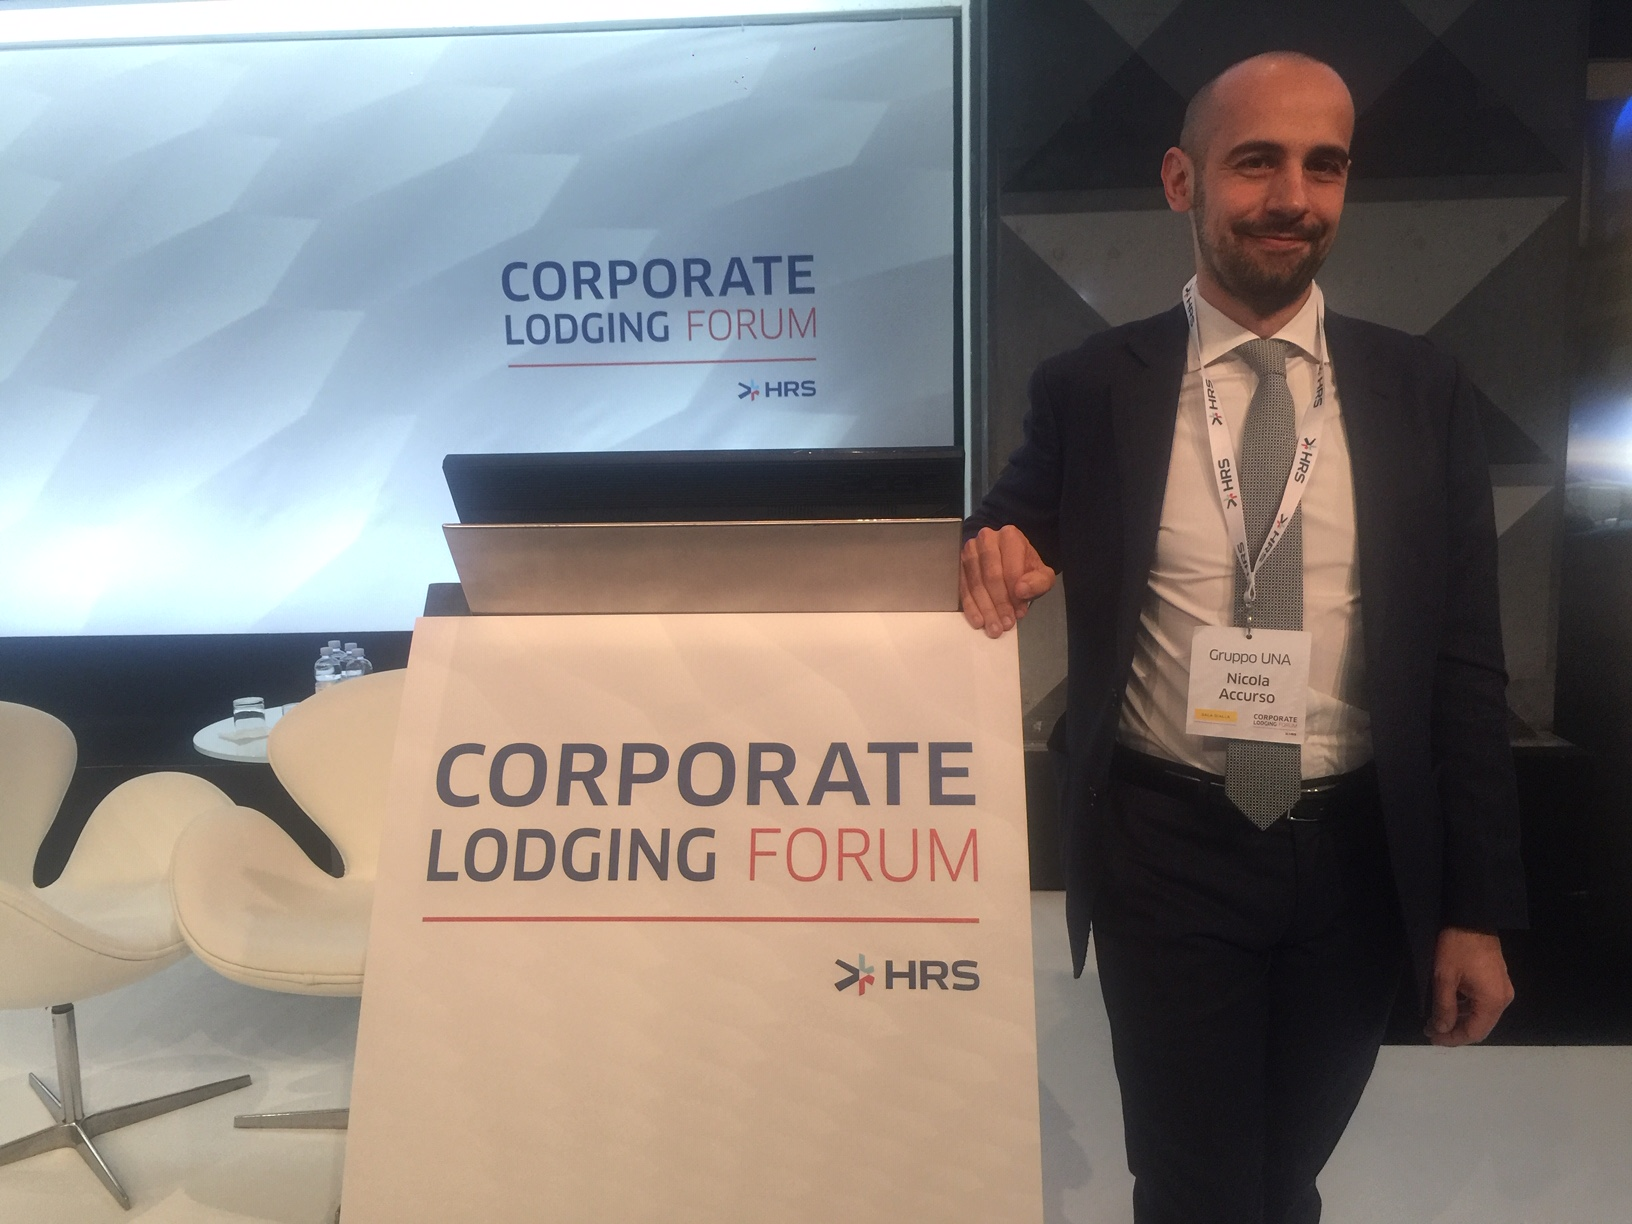 Nicola Accurso - Gruppo UNA - HRS Corporate Lodging Forum 2019 Milano